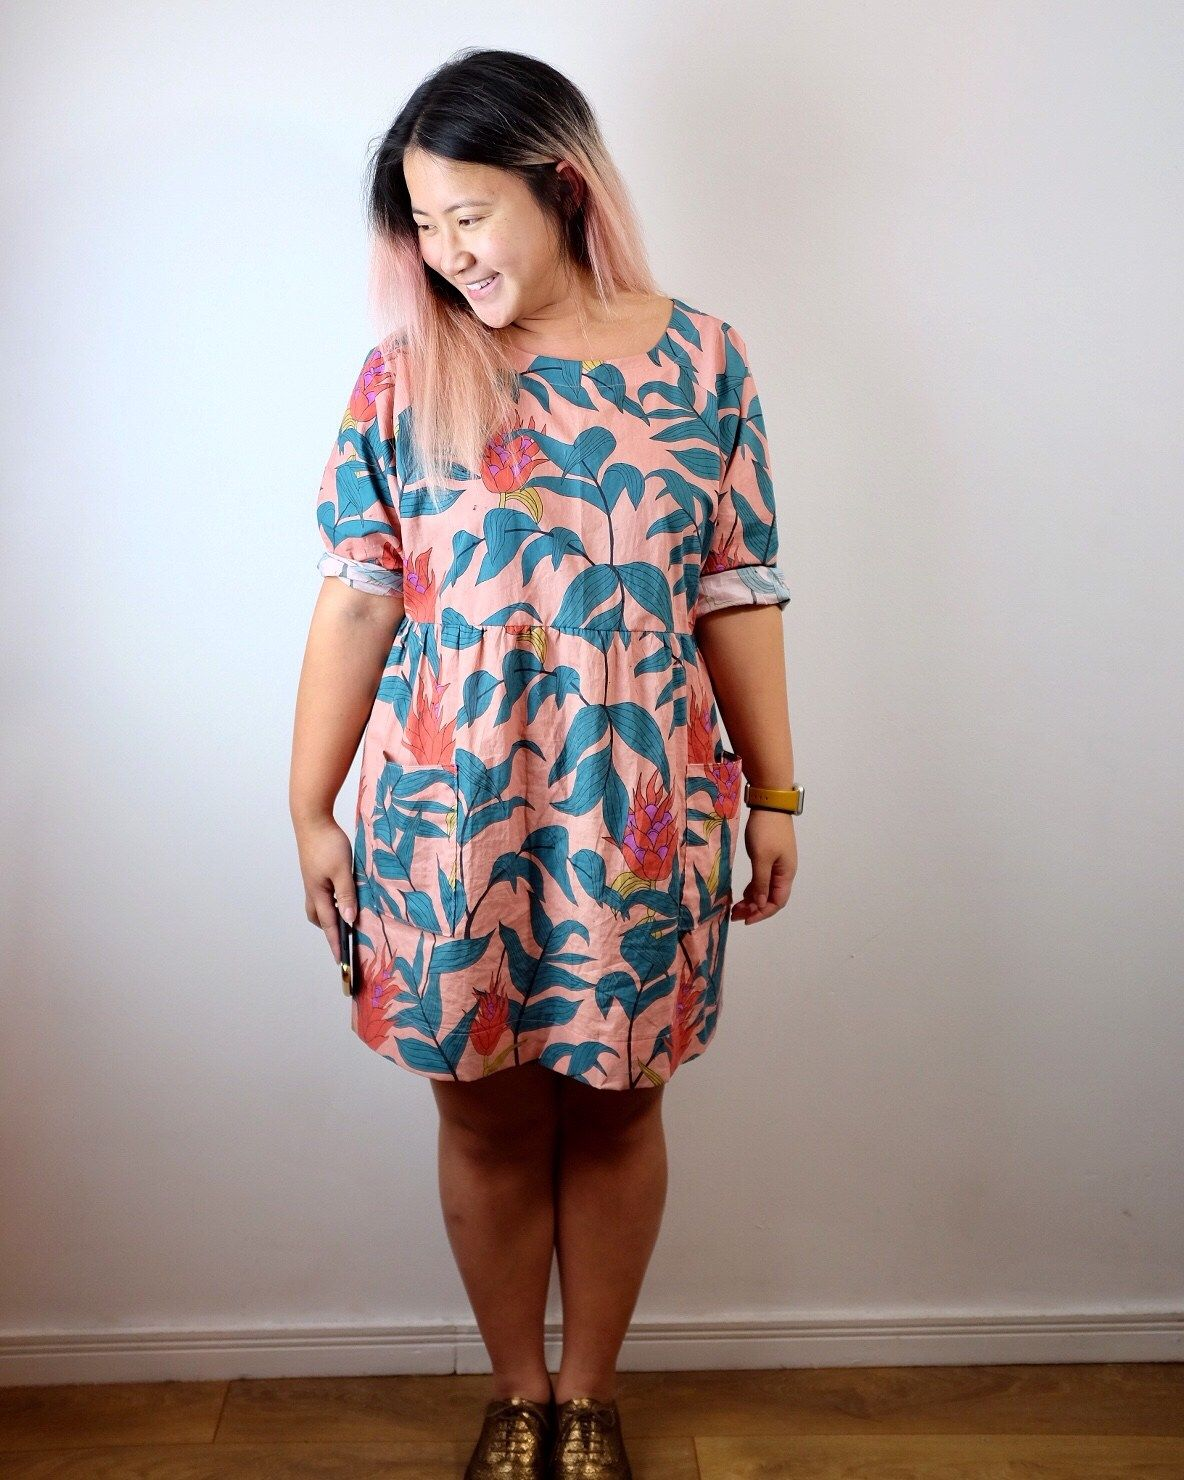 b29af3dbe0 I AM Cassiopée dress review in Lady McElroy tropical stems cotton lawn -  Self Assembly Required